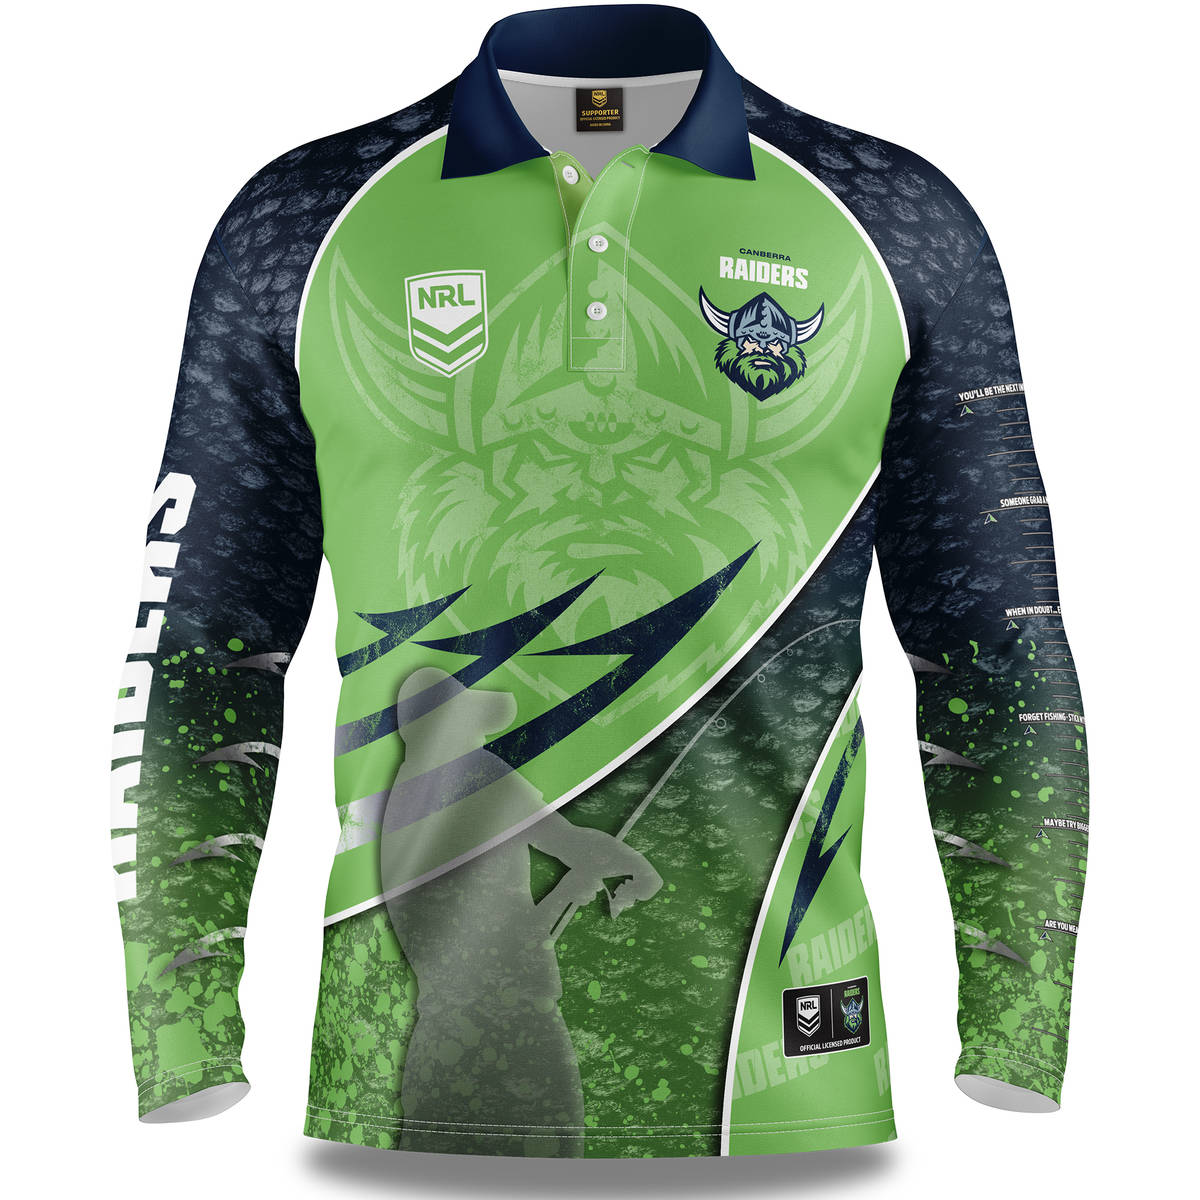 NRL Raiders Fishing Shirt0